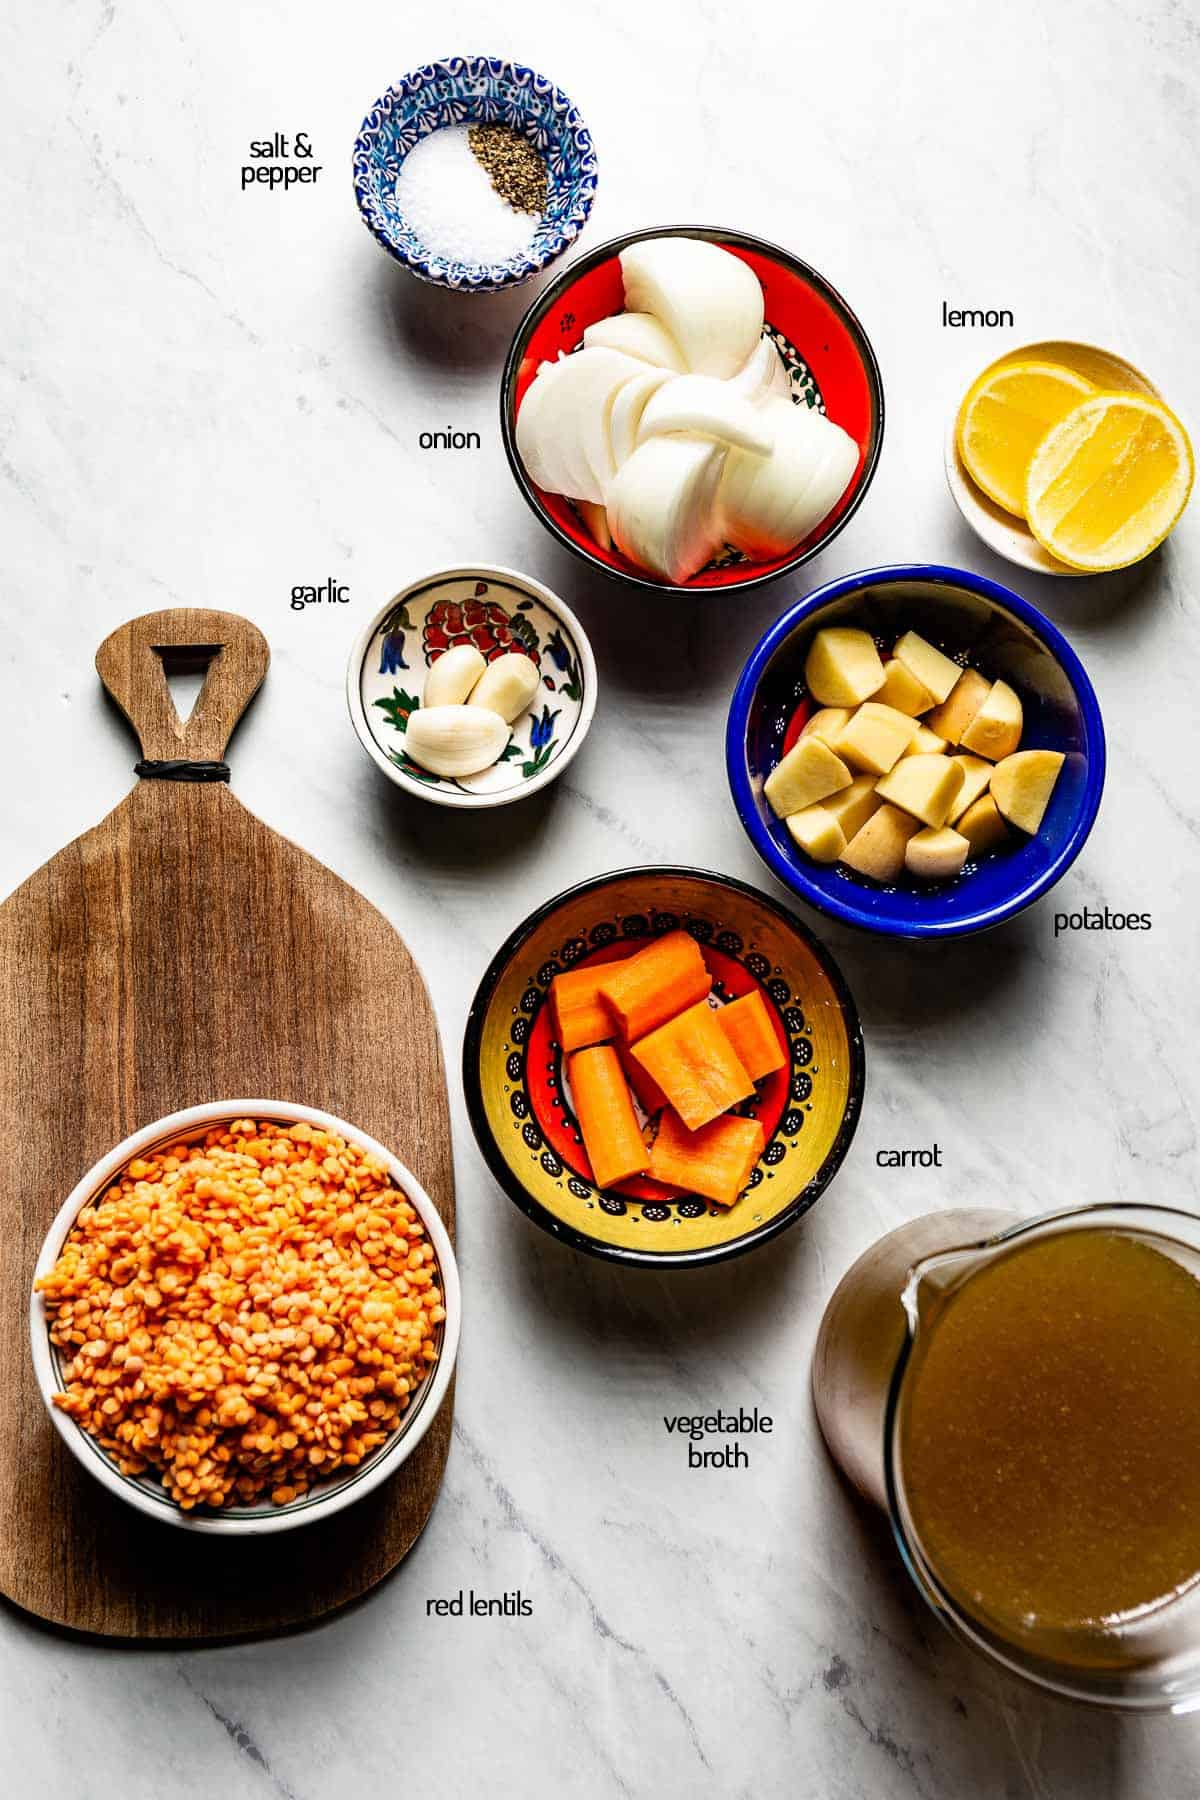 Ingredients for the recipe are placed in small bowls